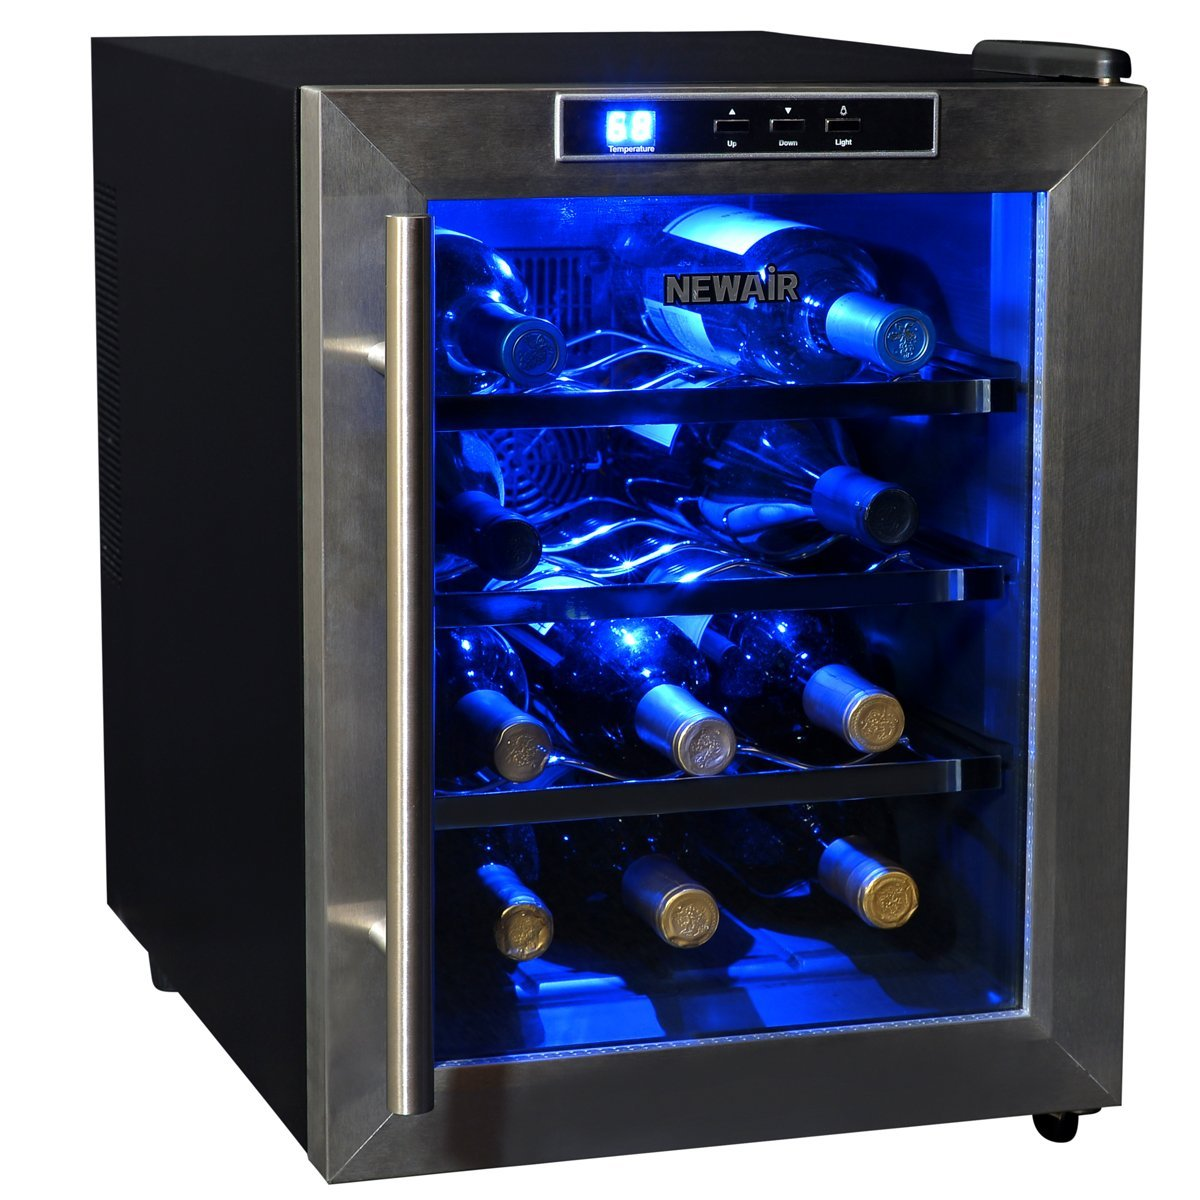 Airplane Wine Bottle Size Newair Aw 121e Thermoelectric Wine Cooler 12 Bottlewine